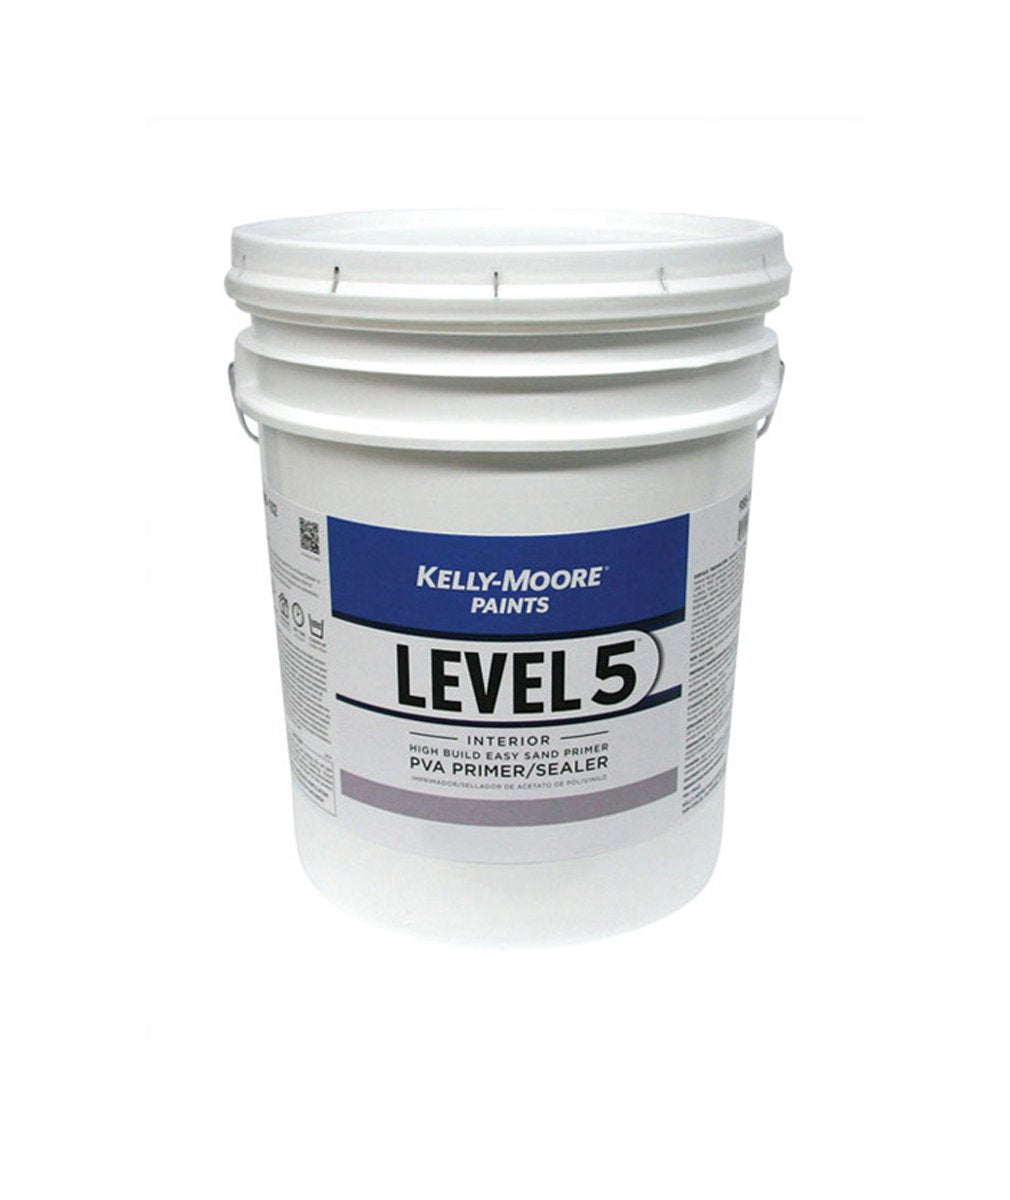 Level 5 Primer Pail, available at Kelly-Moore Paints for Contractors.